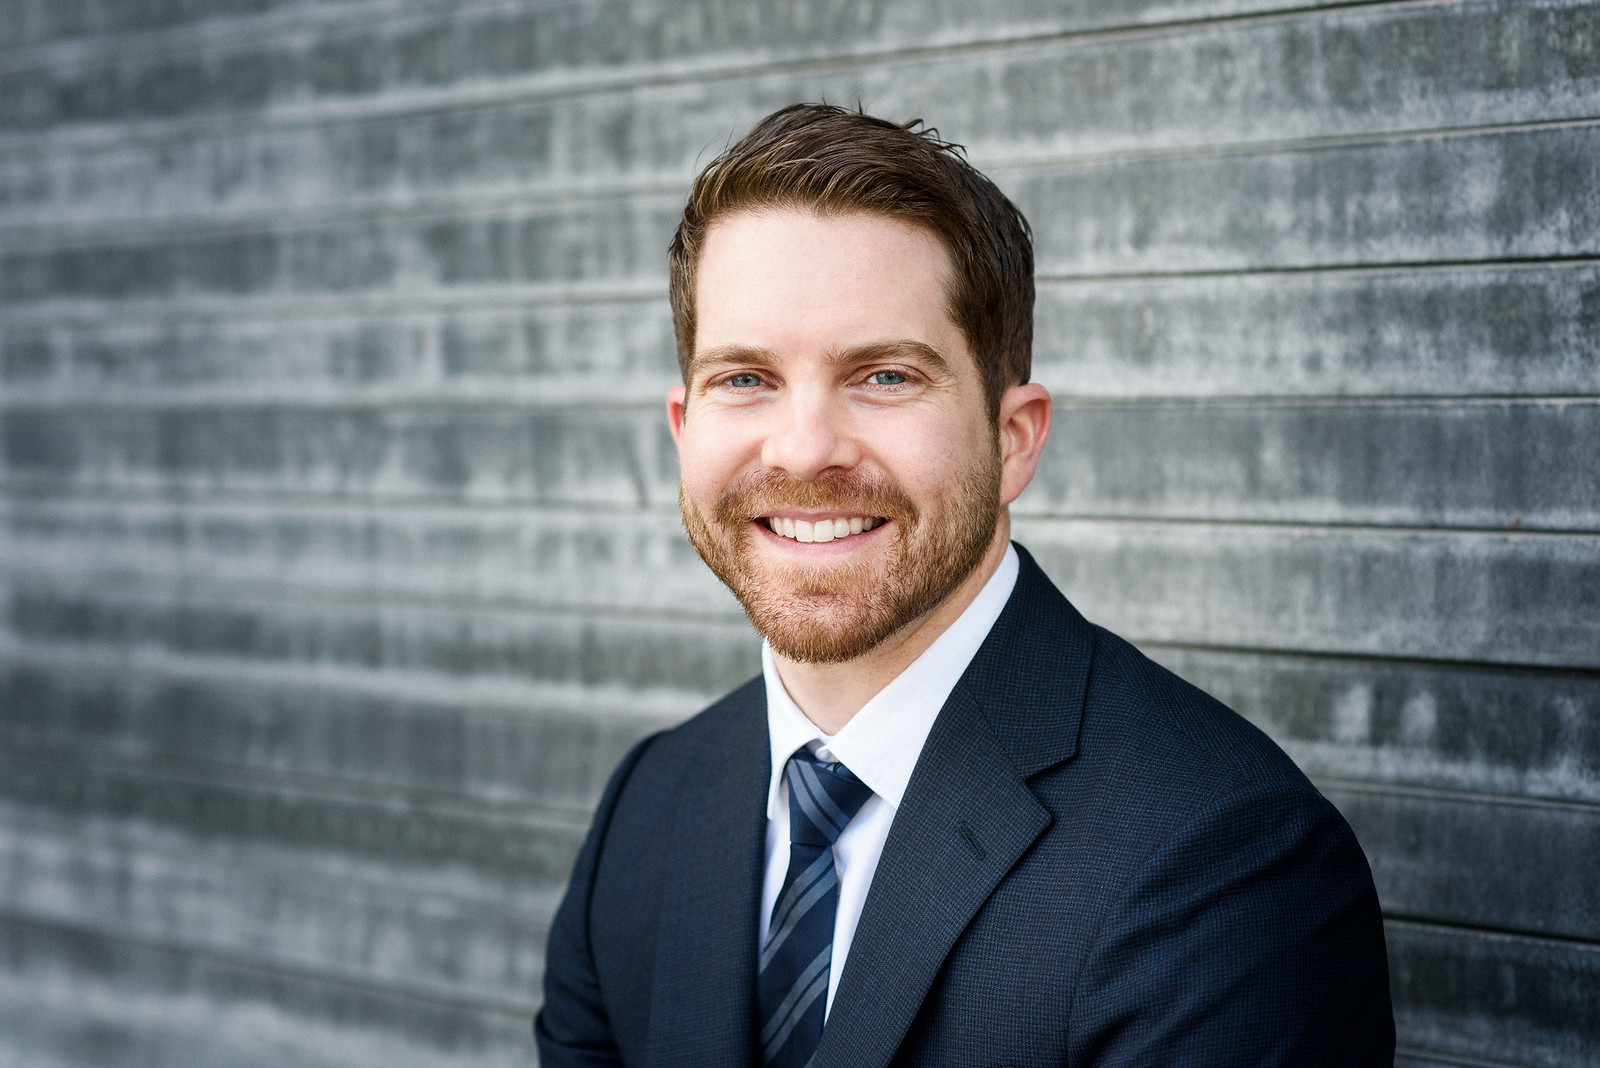 Business portraits in Montreal - Man in suit smiling